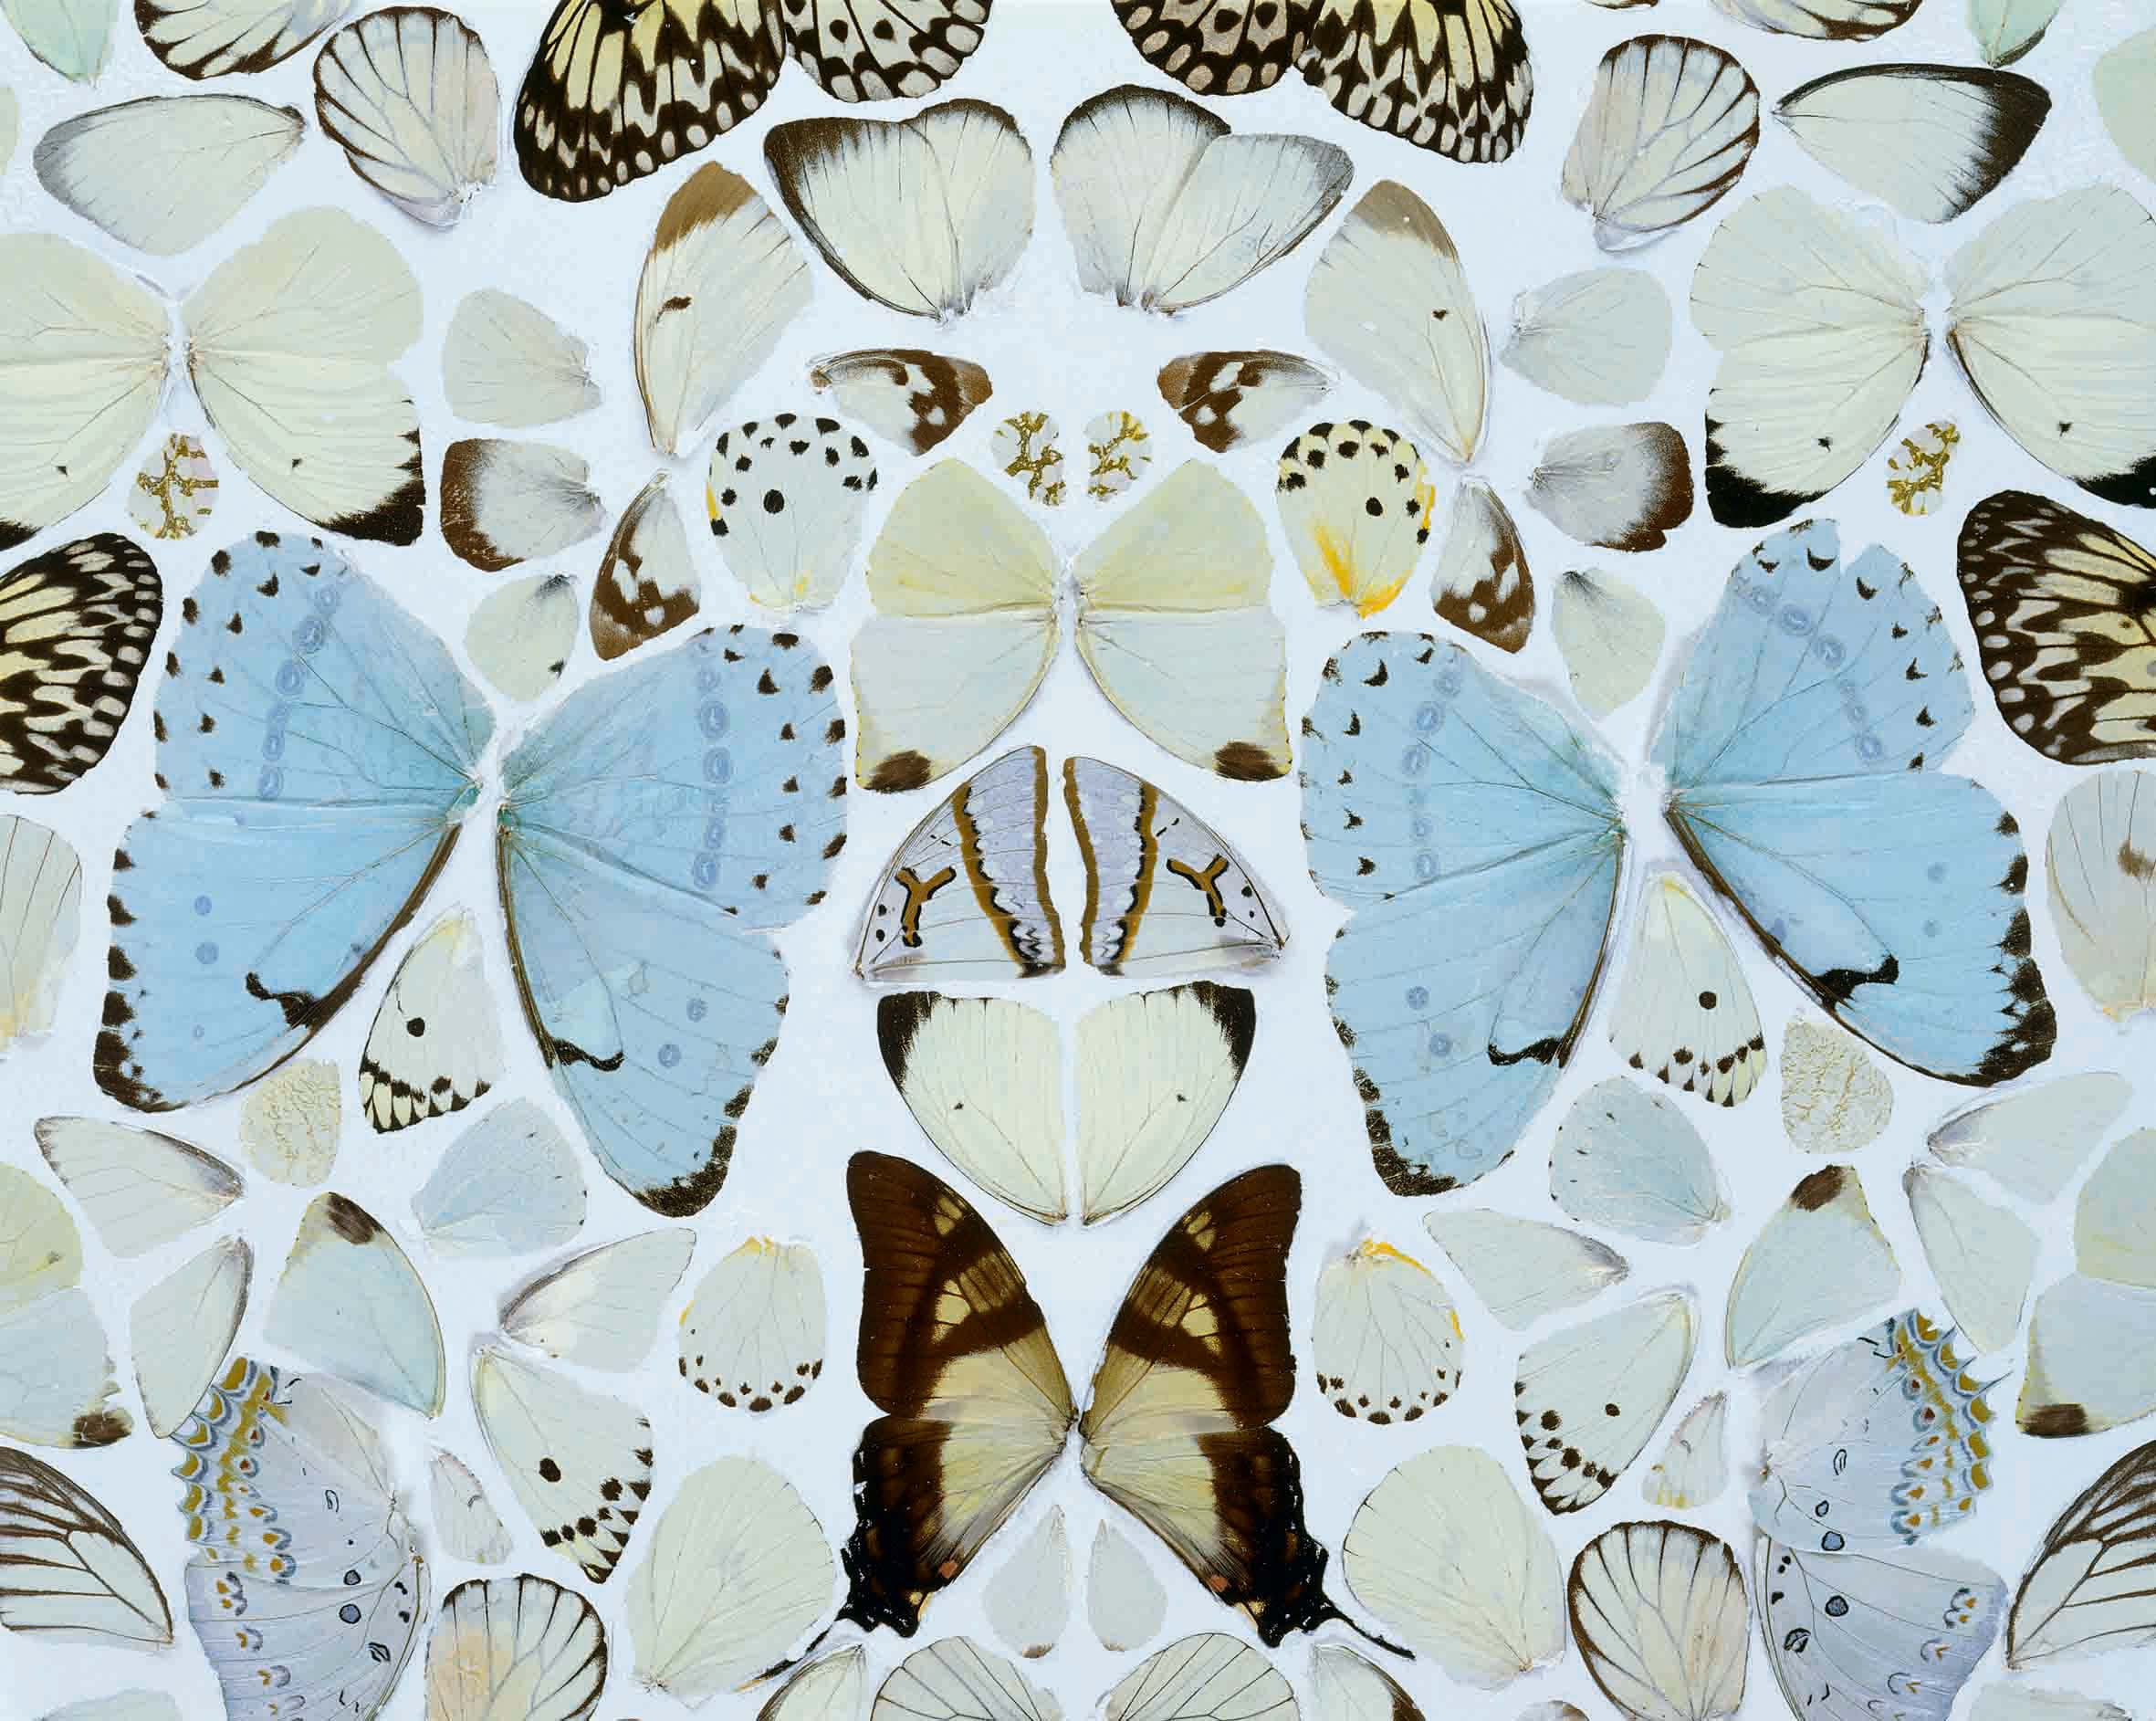 Damien Hirst - Simpathy in White Major. Absolution II - 2006